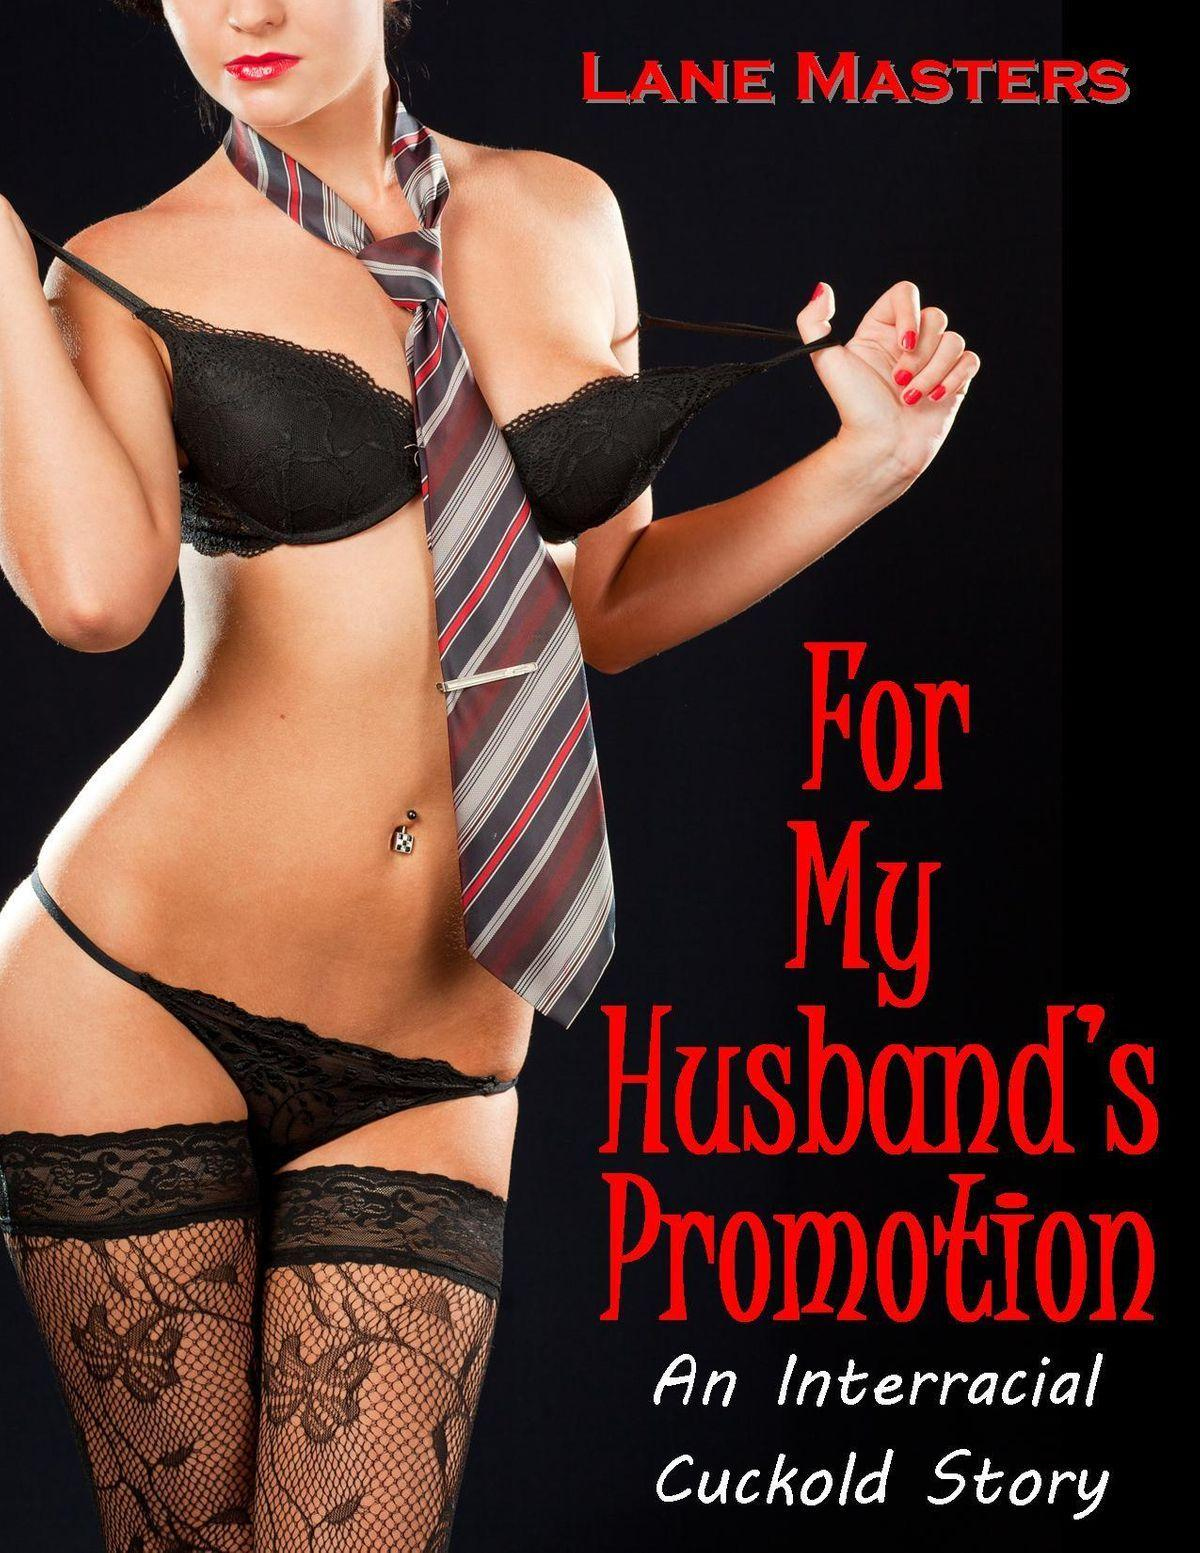 Milan reccomend Milking co worker erotic story